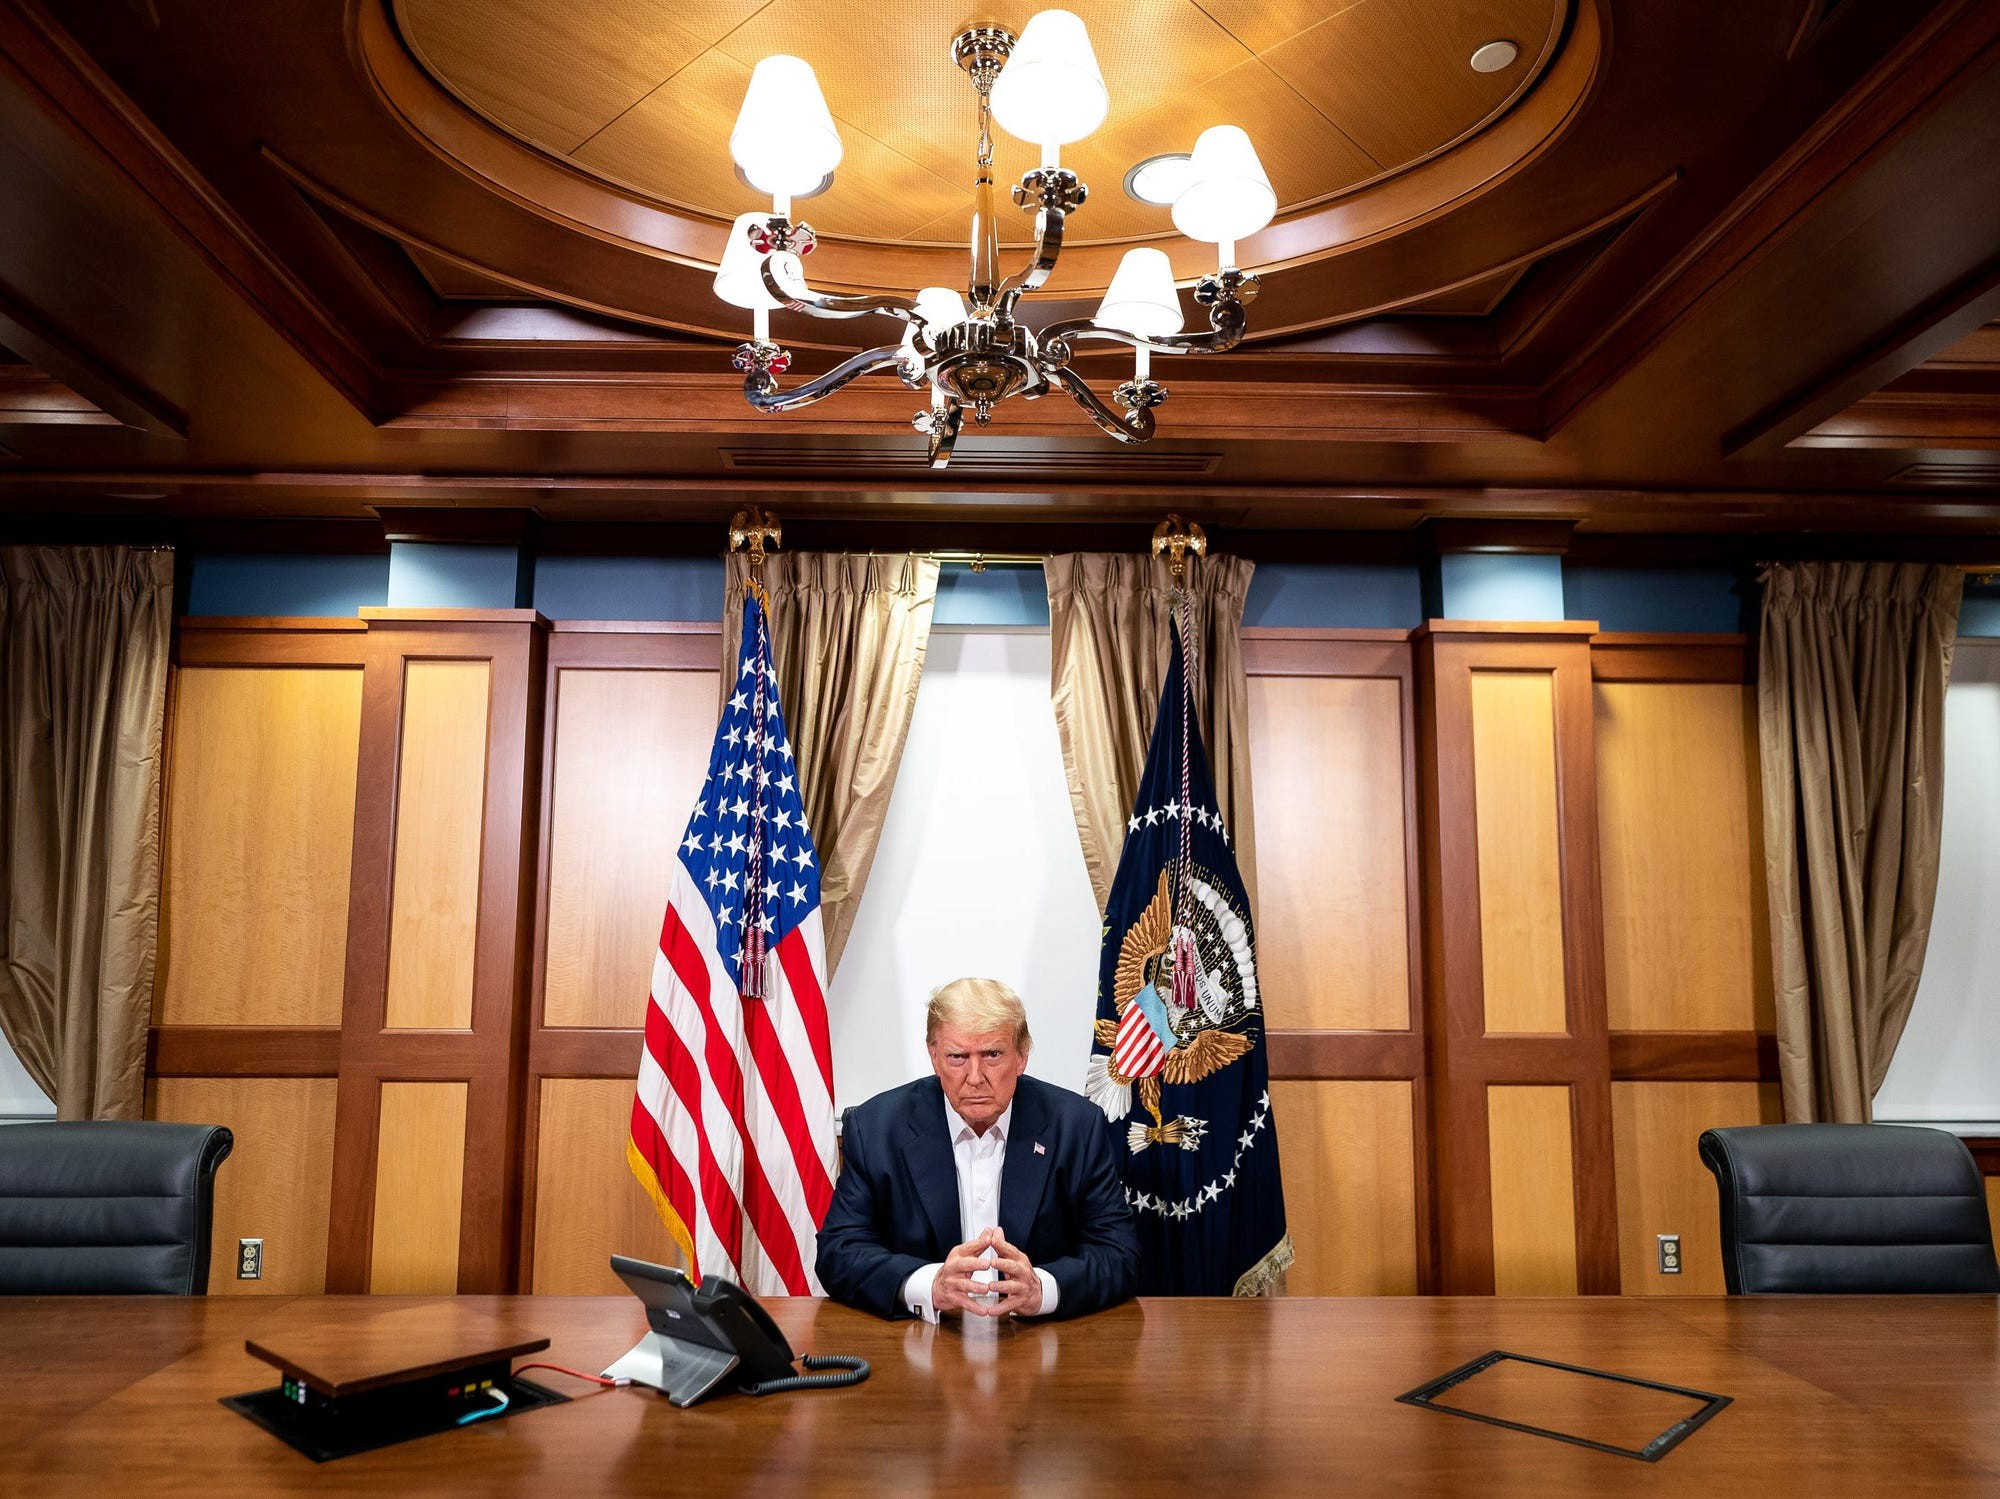 President Donald Trump in his conference room at Walter Reed National Military Medical Center in Bethesda, Maryland.